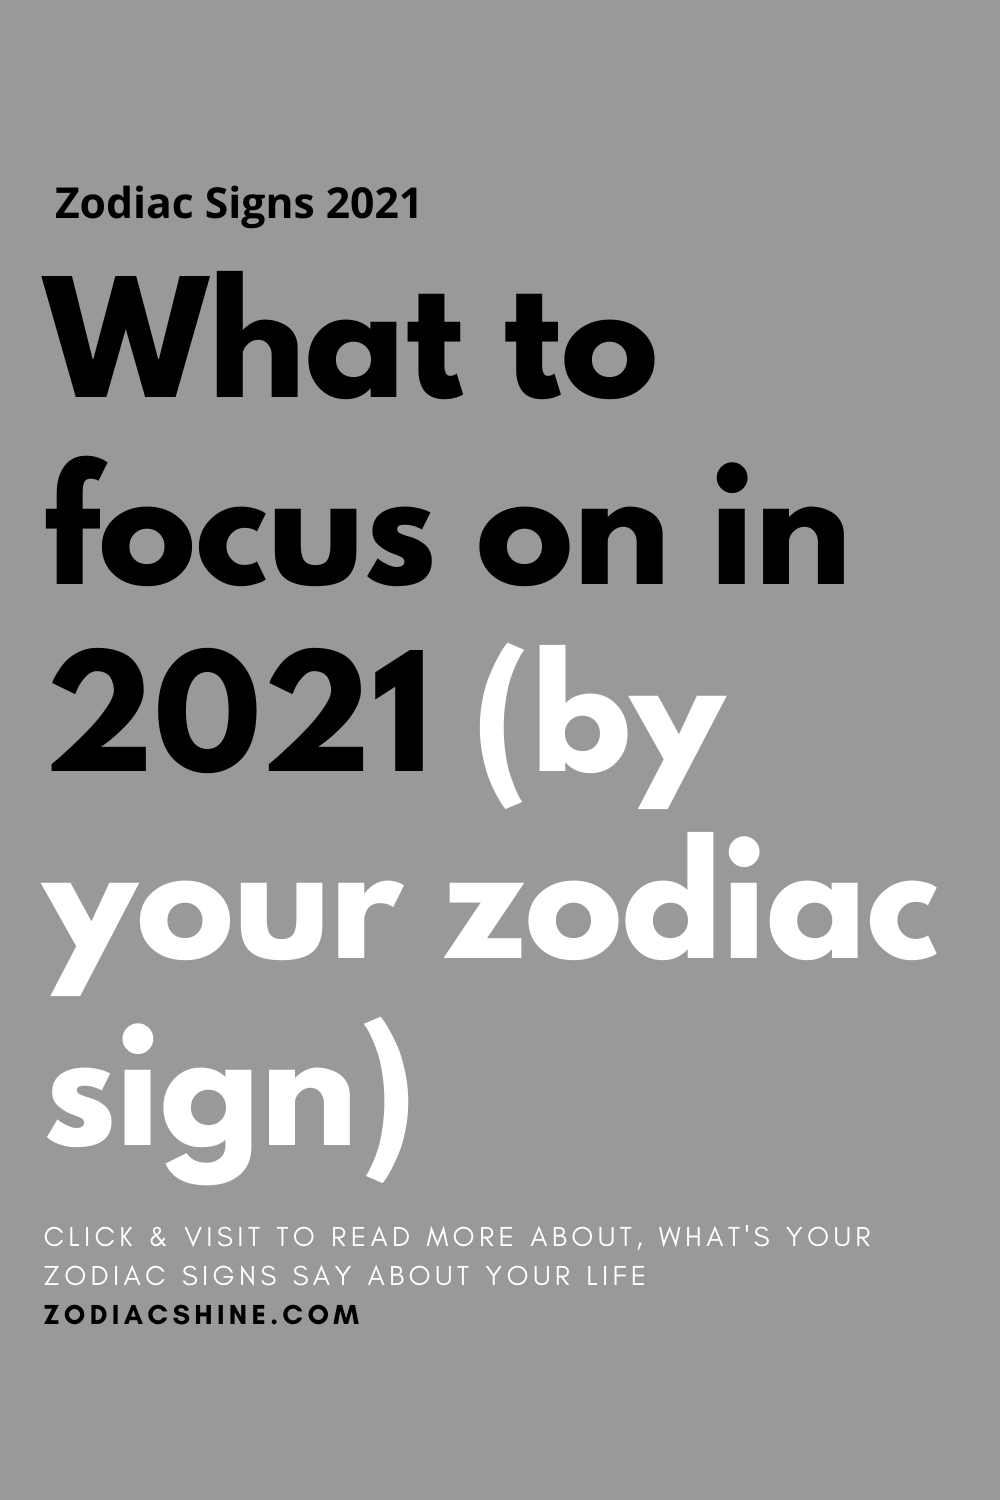 What to focus on in 2021 by your zodiac sign